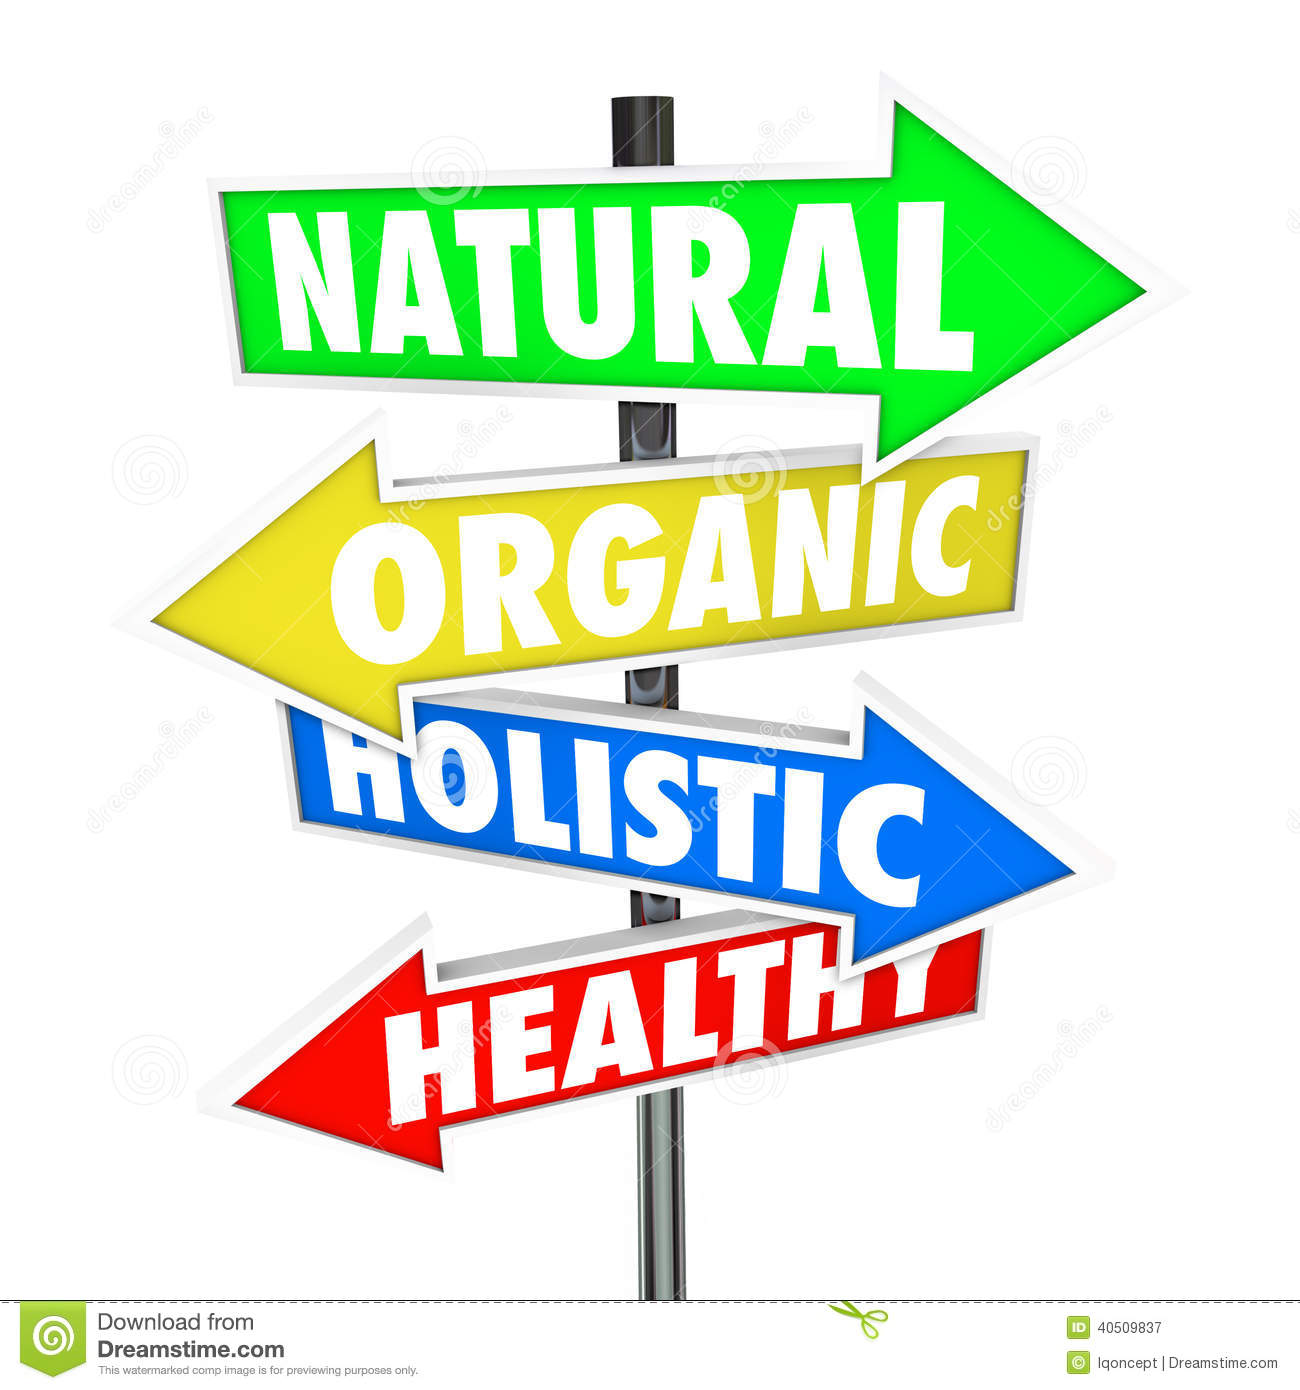 Holistic Health and Nutrition is business a good major